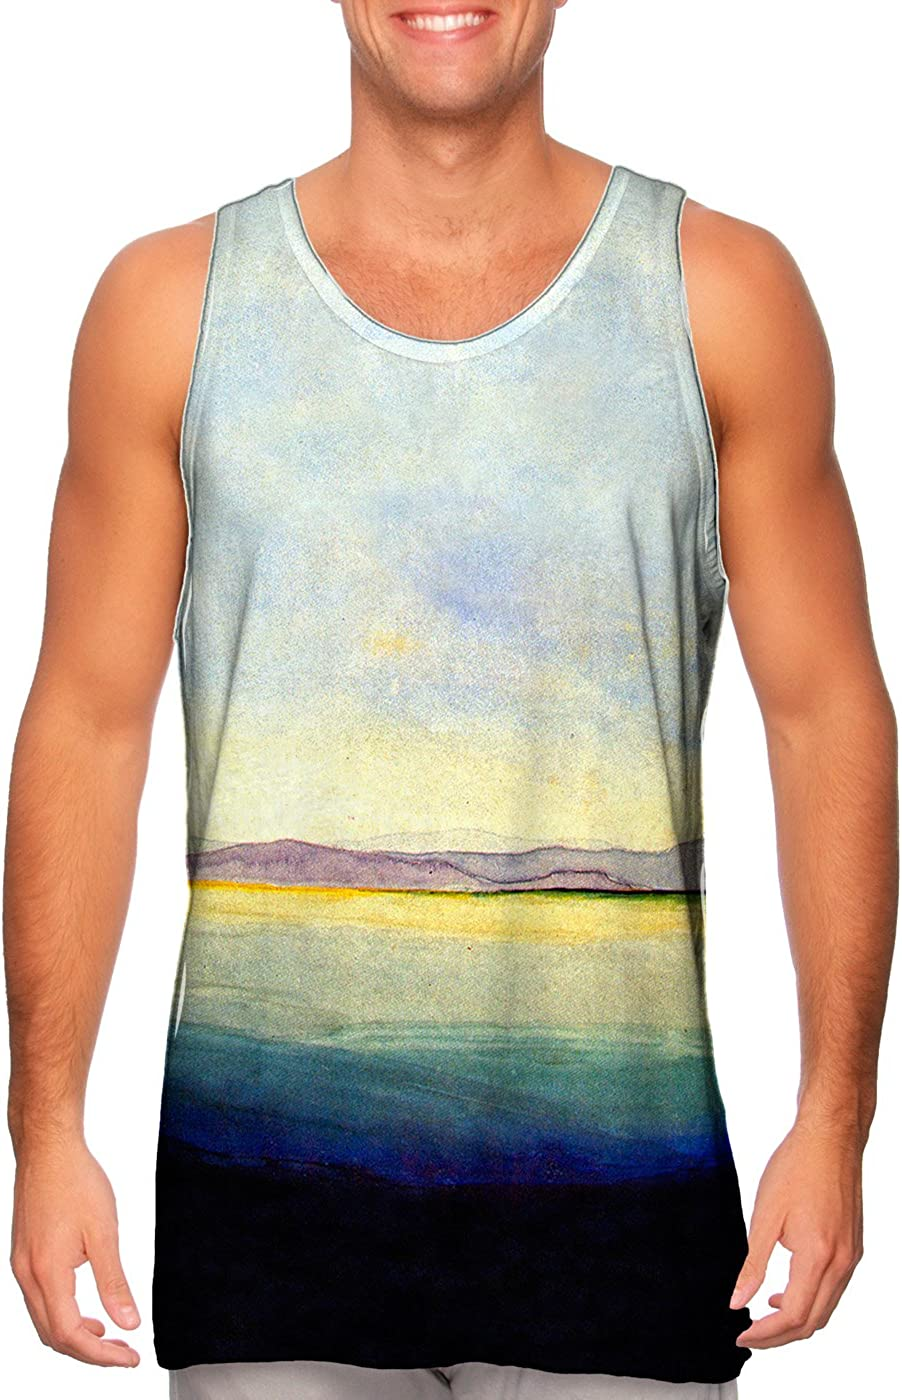 Yizzam- M.C.Escher - The Sea at Mens Popular Ranking TOP14 shop is the lowest price challenge 19 Mo.-Tshirt- Top Tank